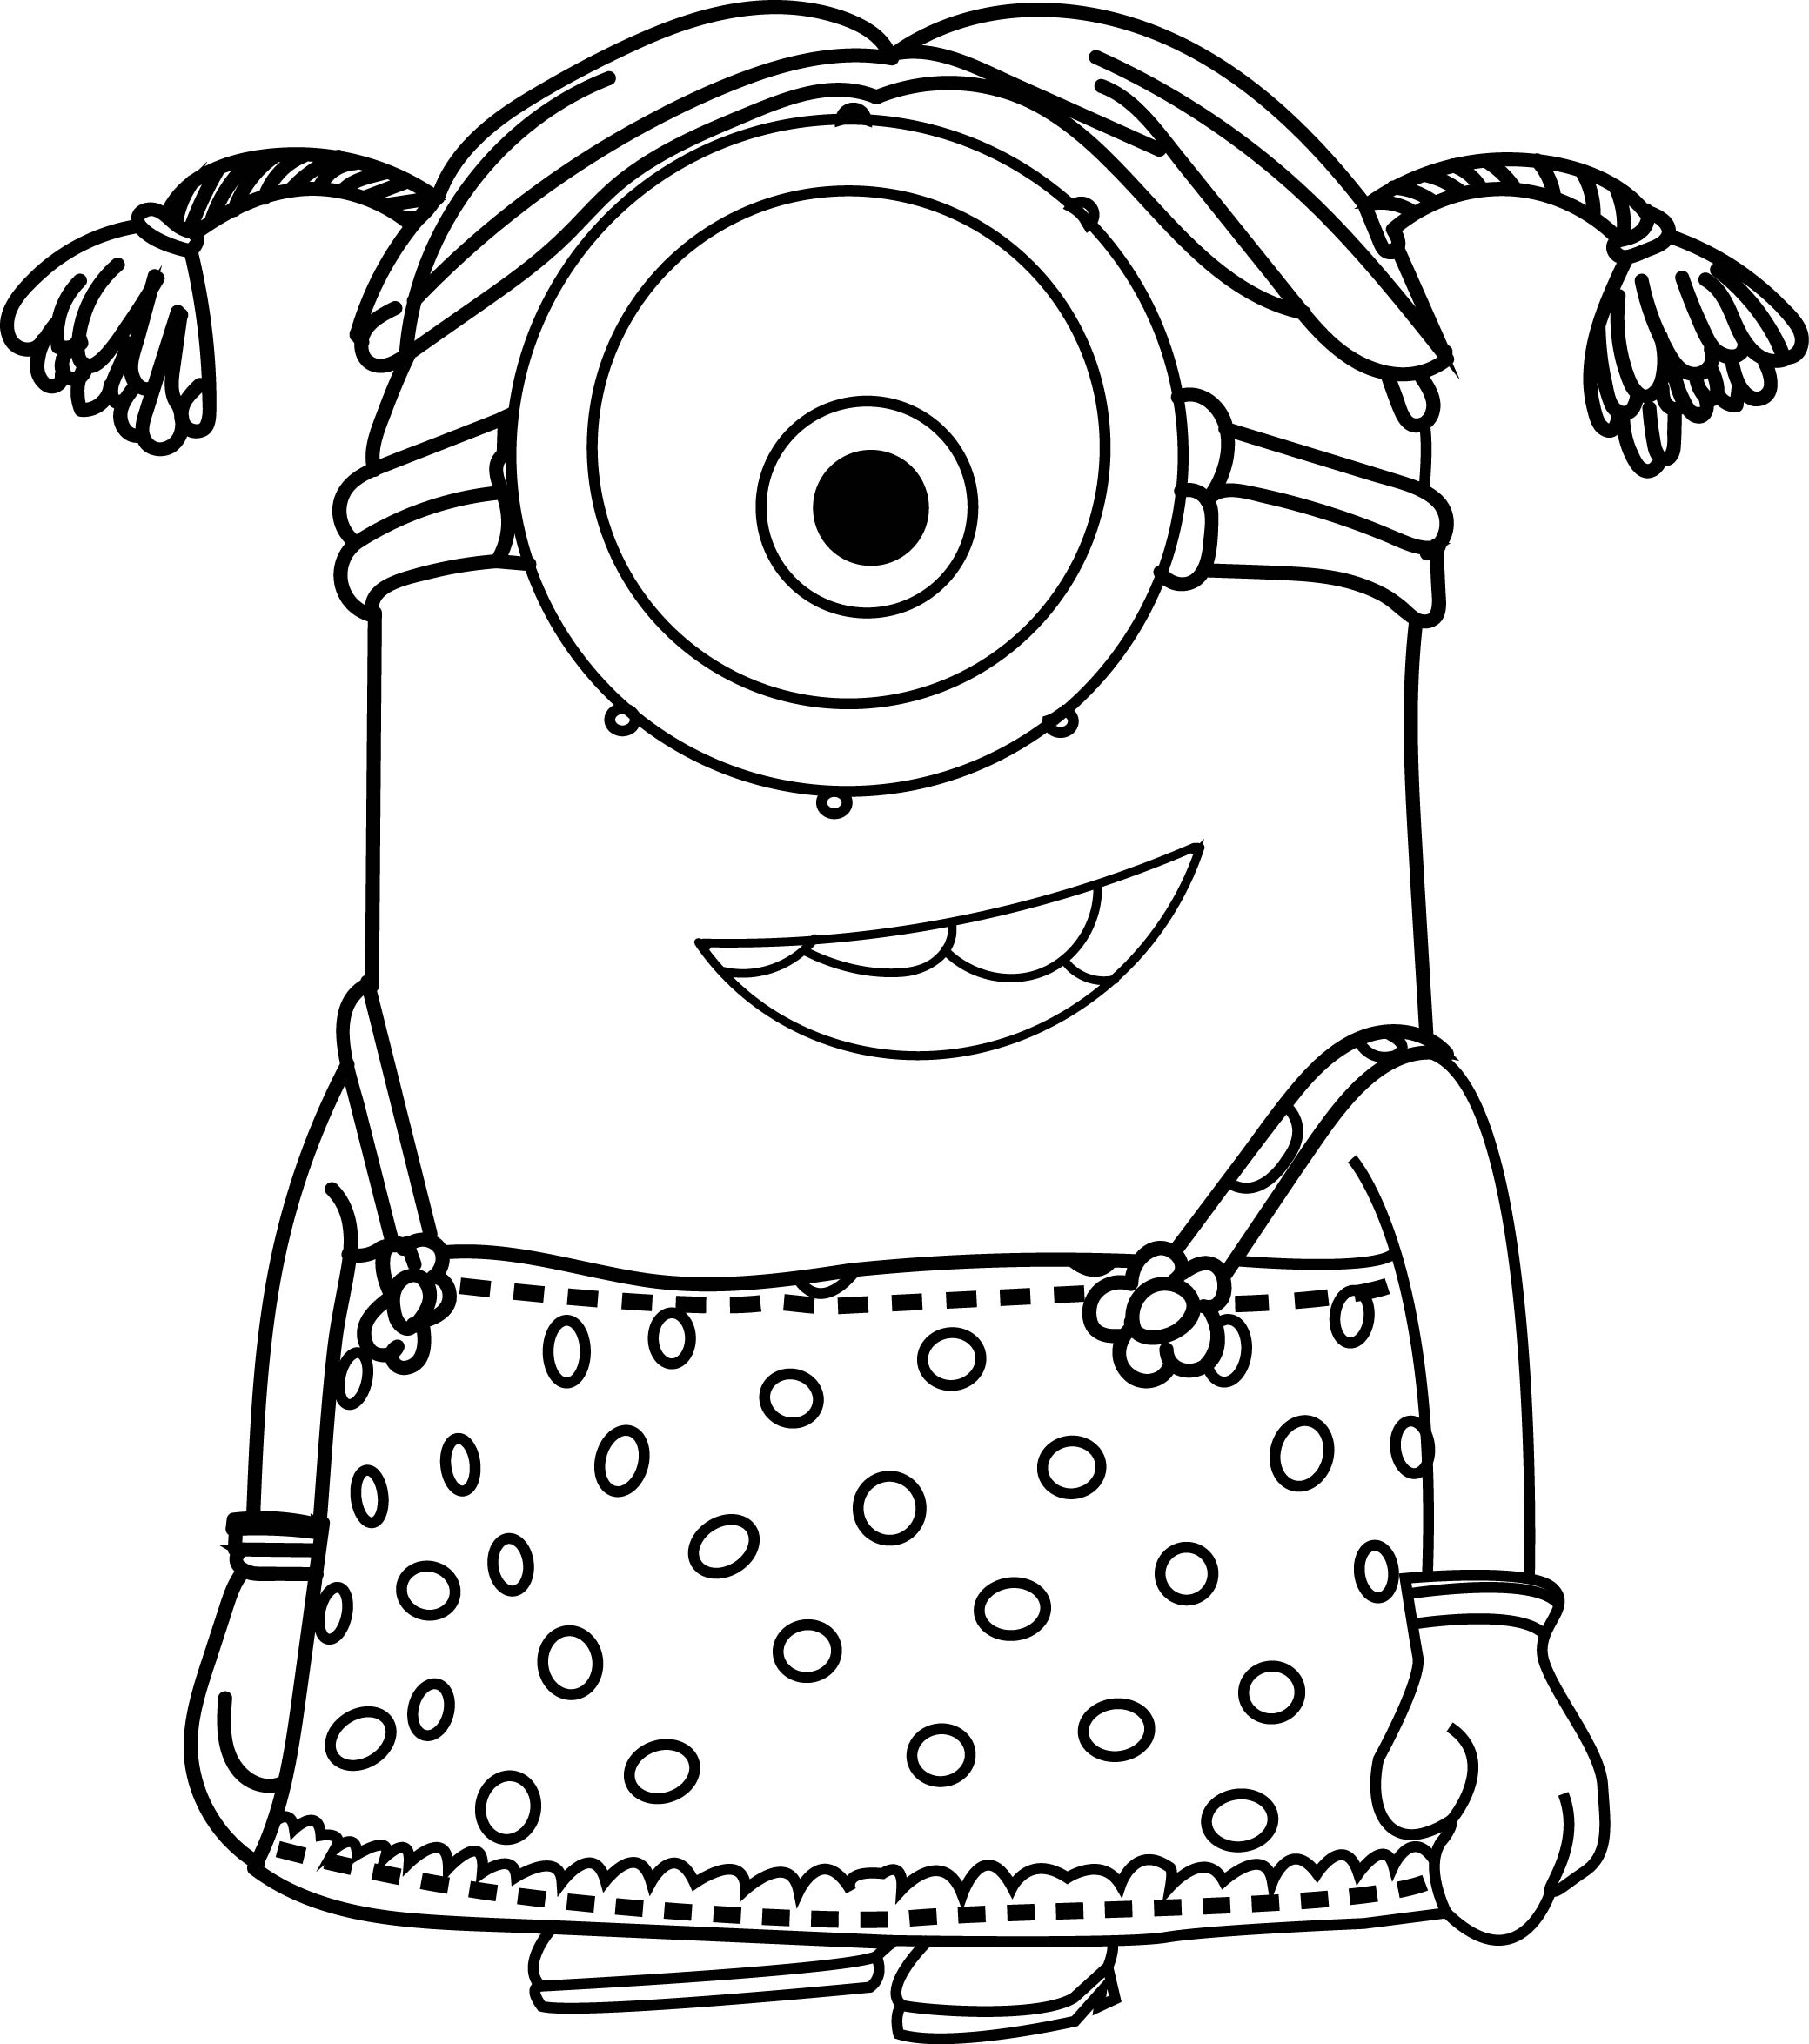 Cartoons minions little girl coloring page for Little girls coloring pages